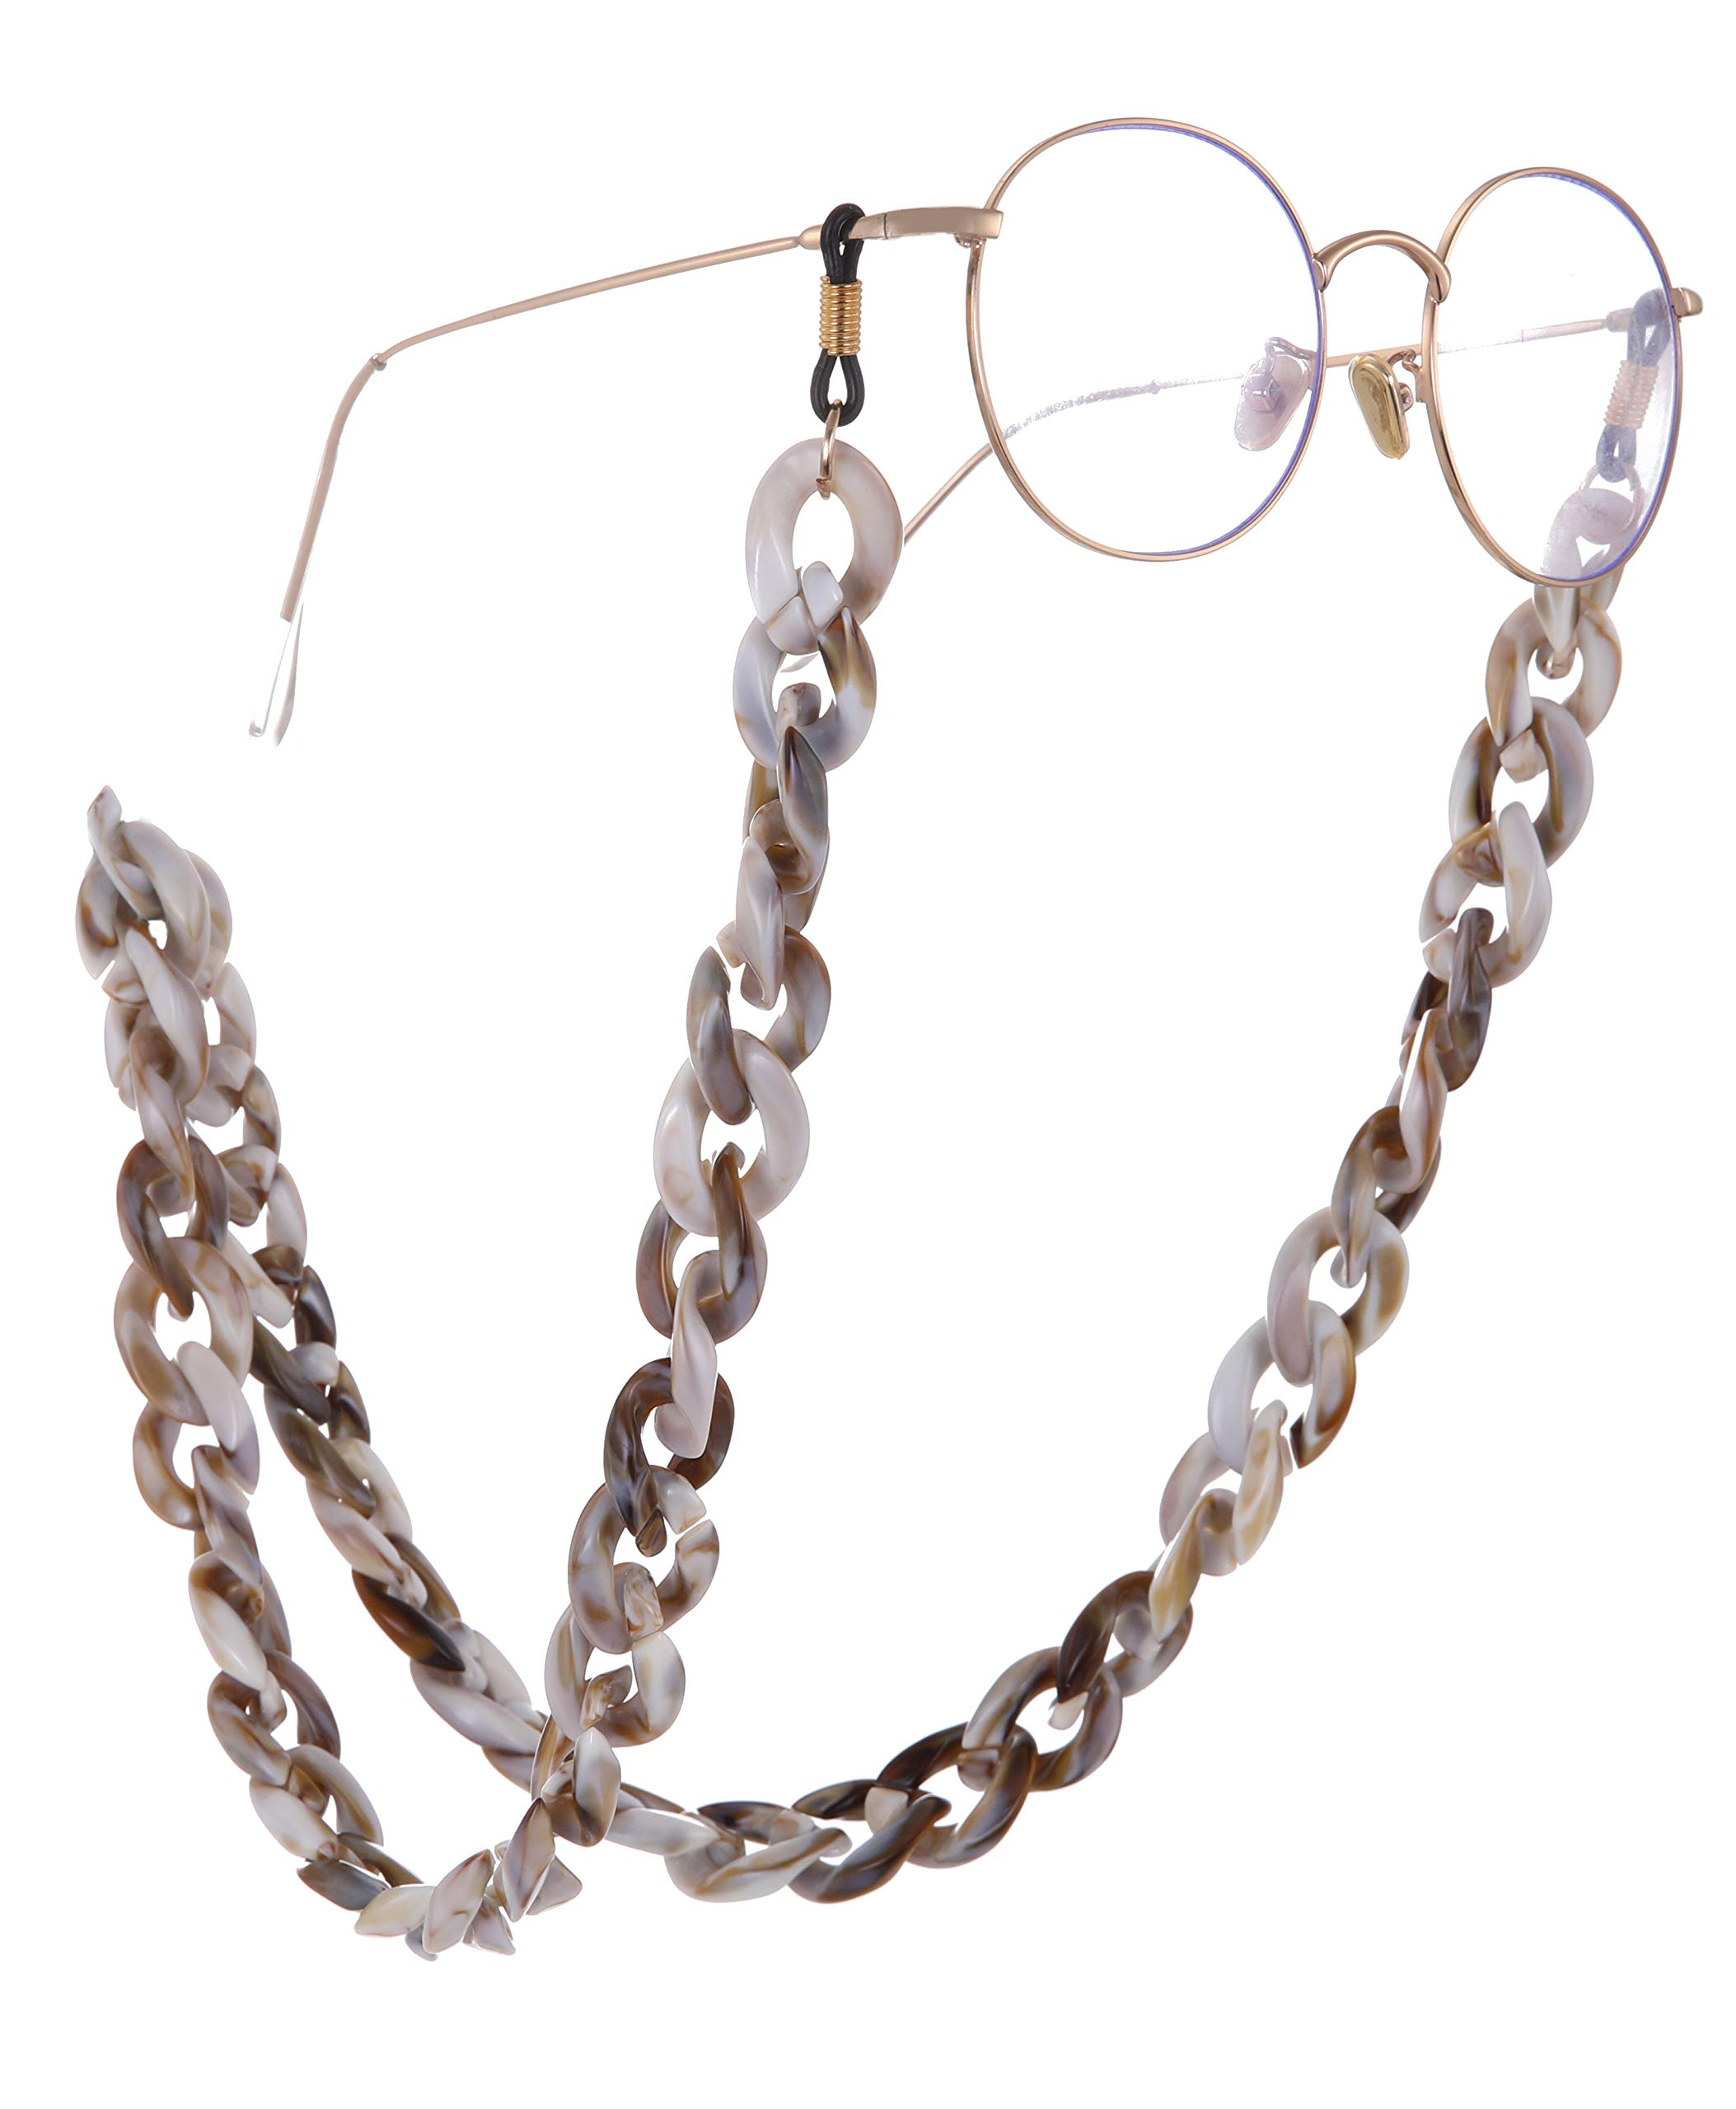 EUEAVAN Fashion Twist Link Acrylic Eyeglass Chain Marble Texture Sunglasses Holder Eyewear Retainer Strap for Women (Coffee Color) by EUEAVAN